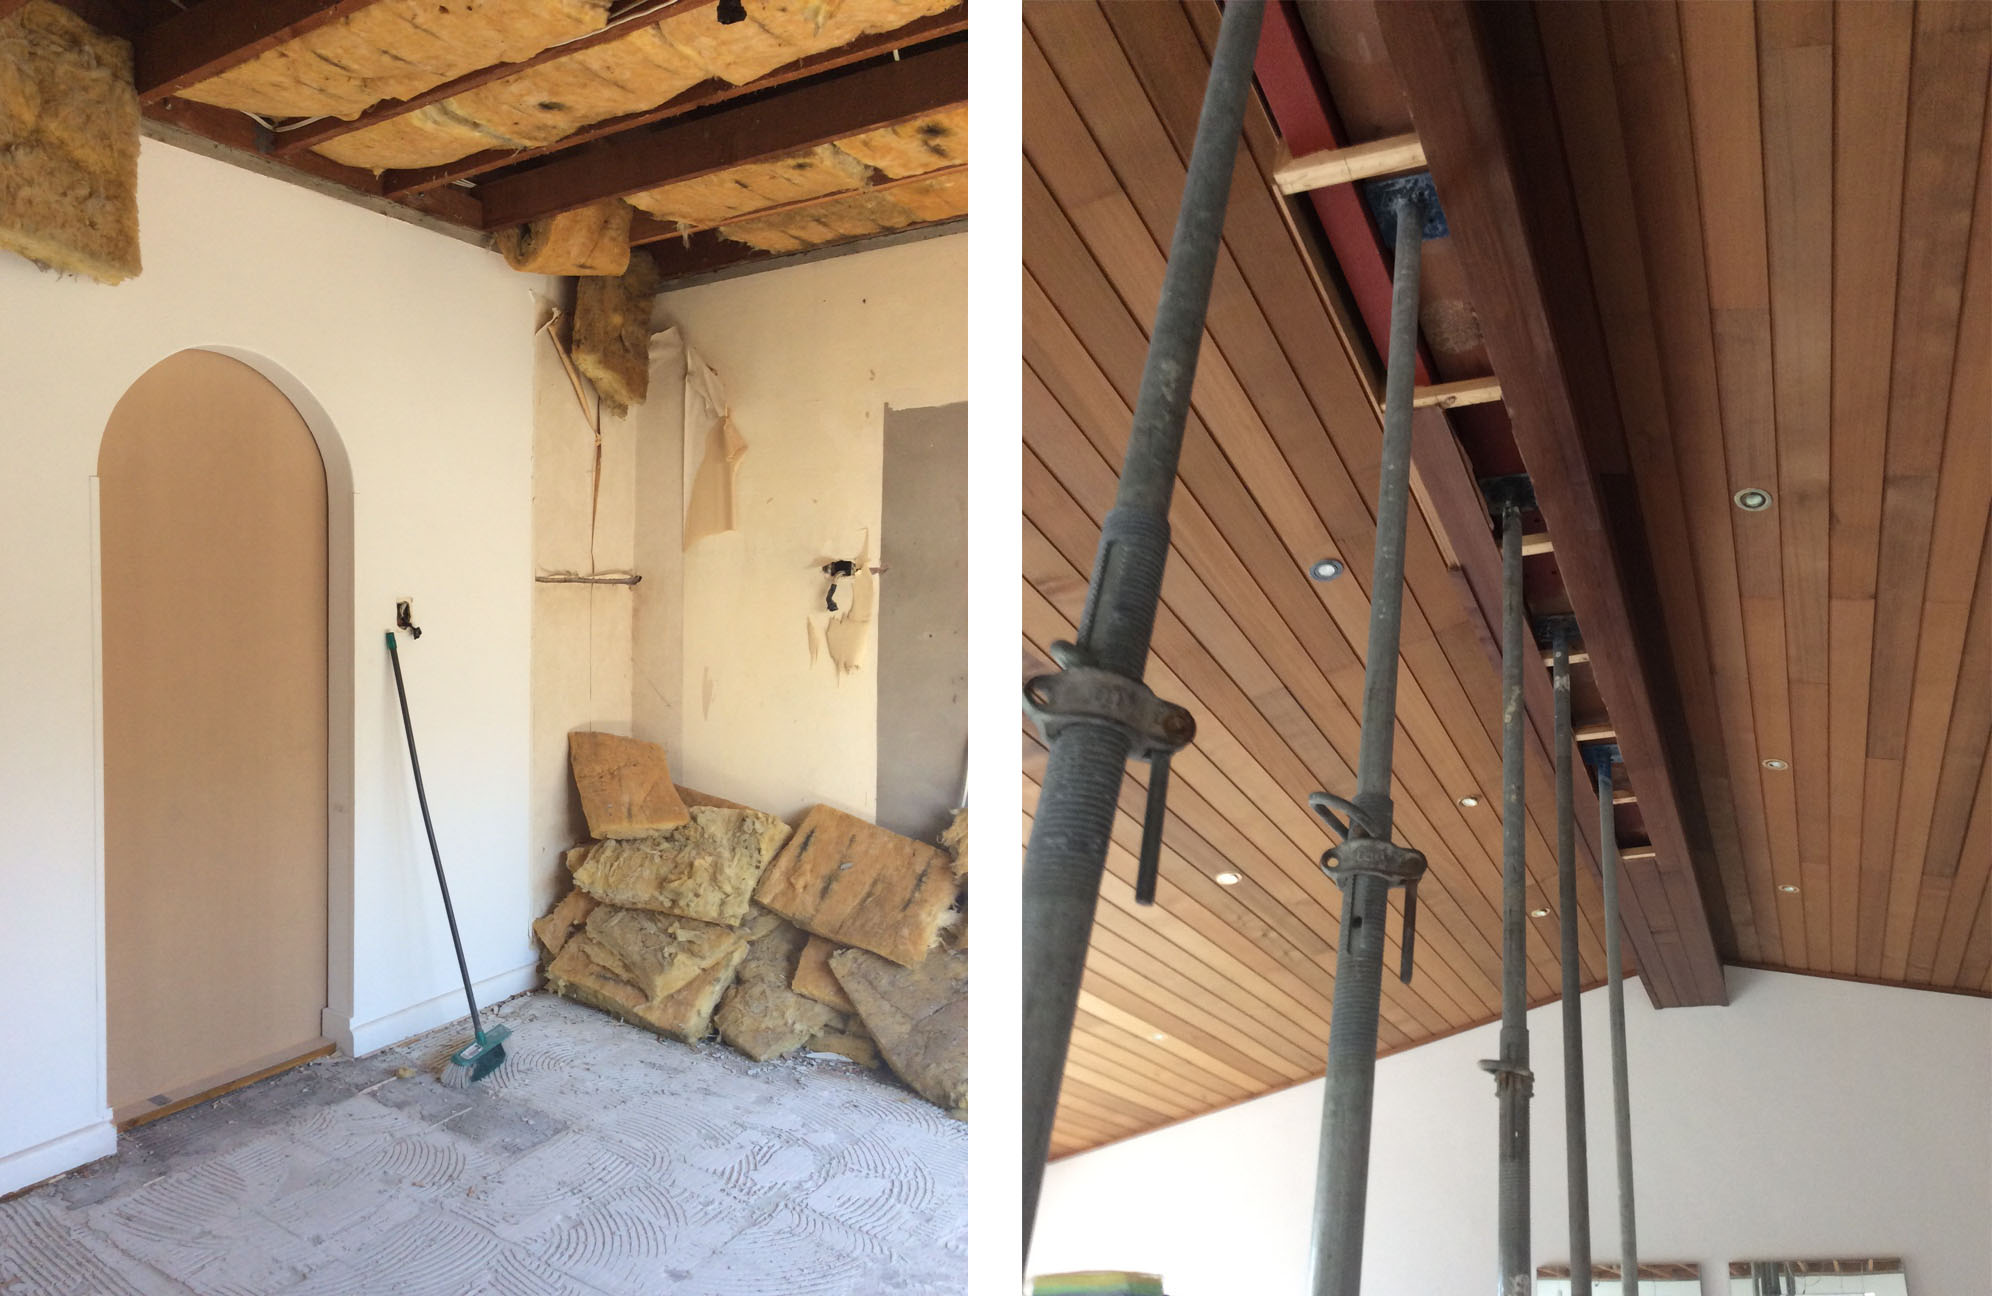 The dated arches will soon be a thing of the past. Supports will be installed to quite literally hold up the roof whilst the walls are safely removed to make way for a new structural steel beam.